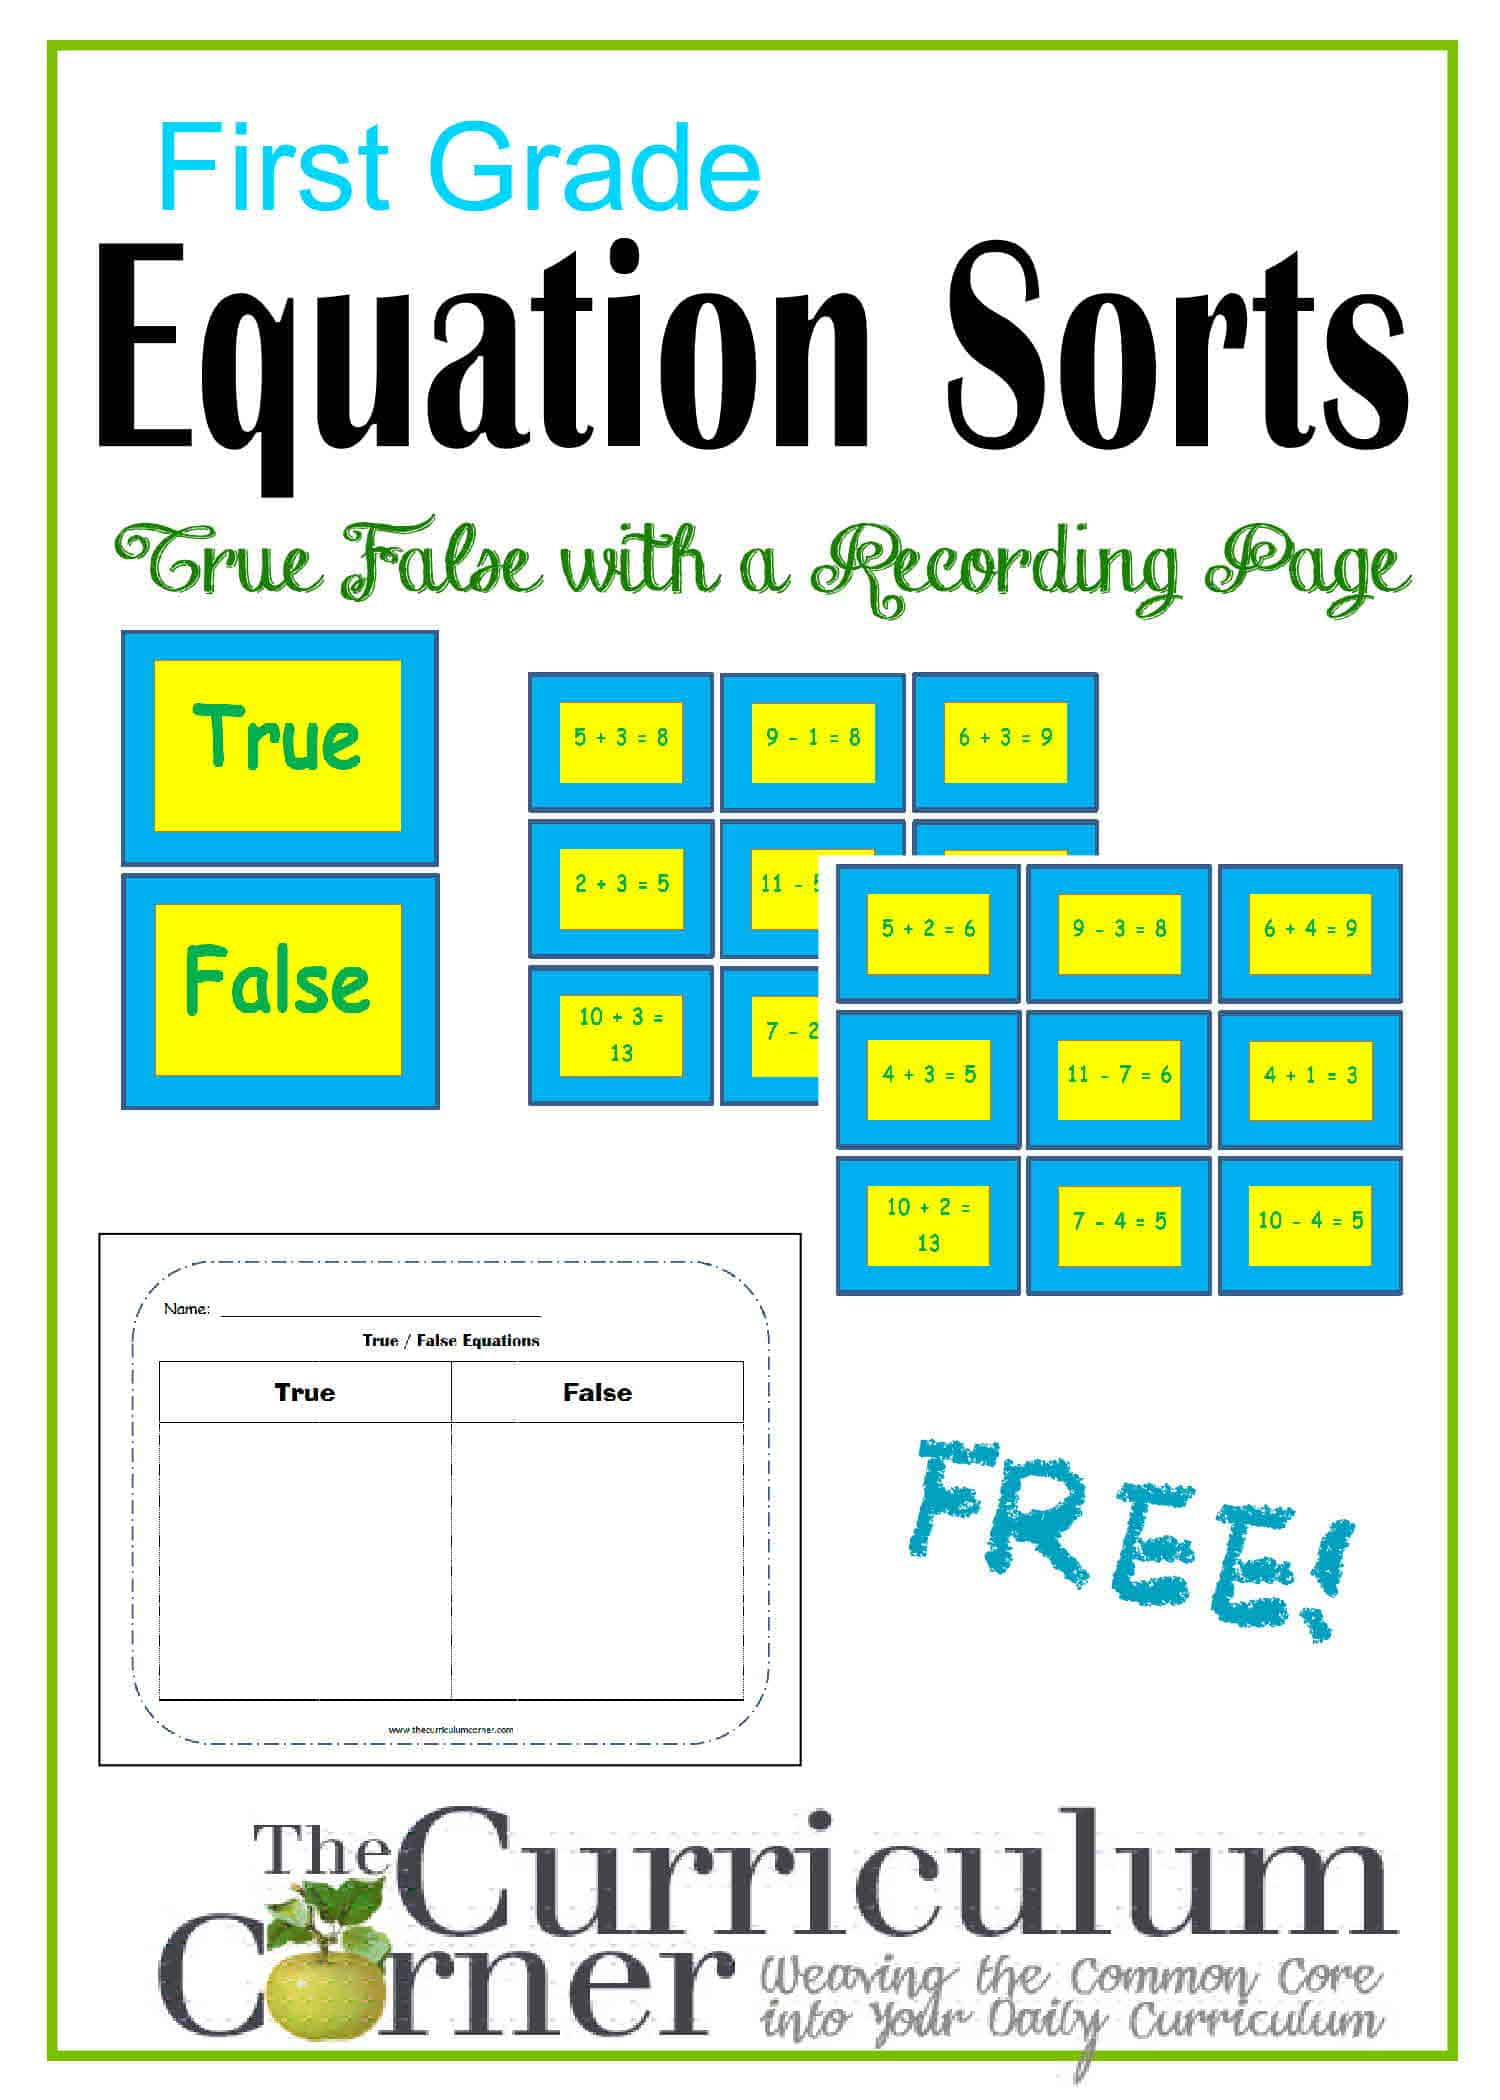 First Grade True/False Equation Sorts